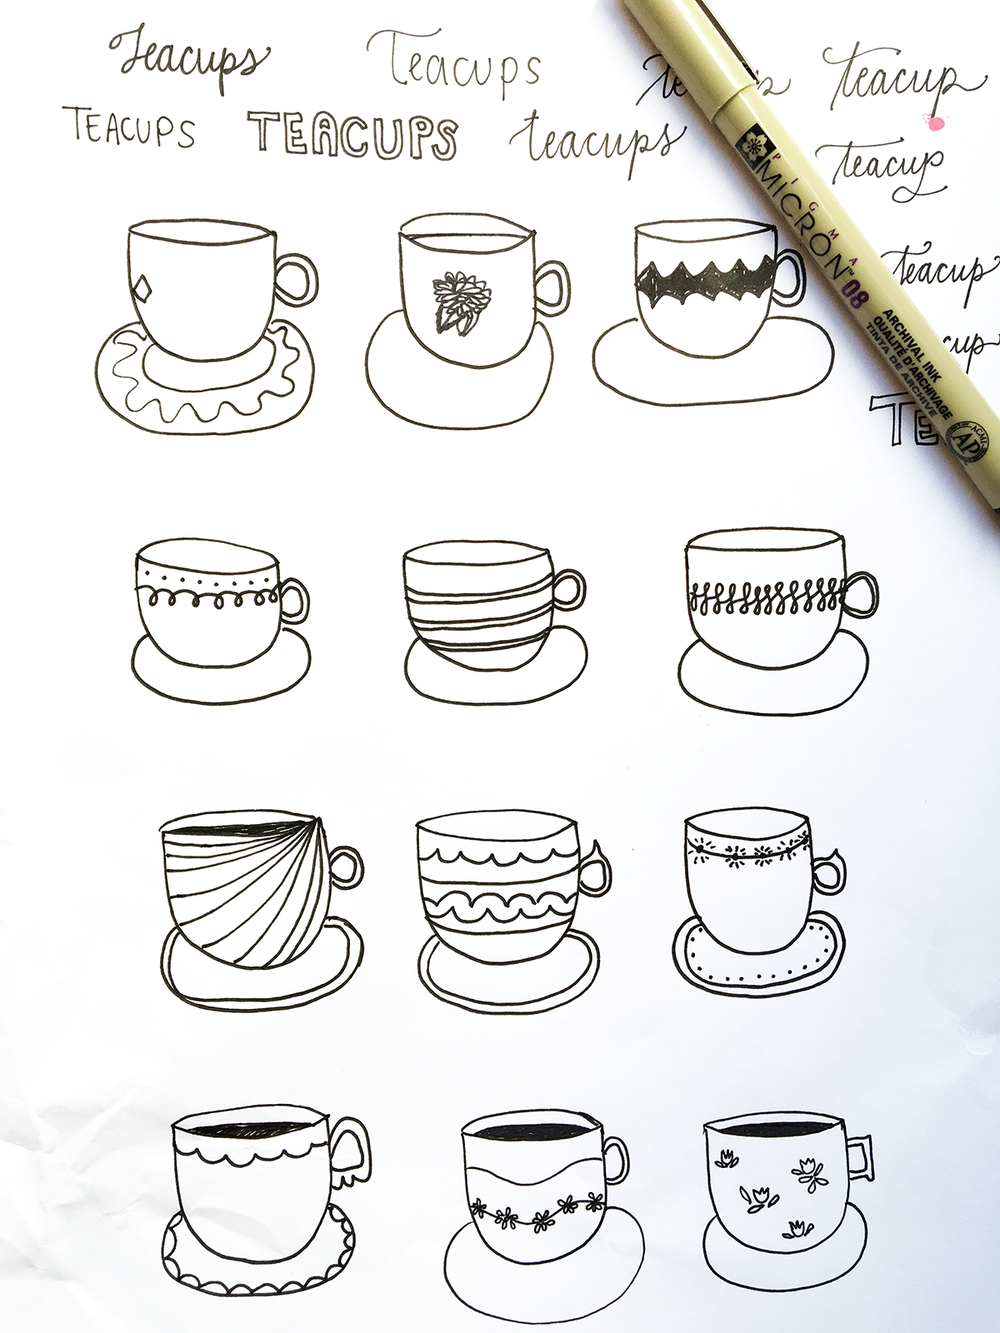 Amanda Gomes Teacup Illustrations • www.delightedco.com